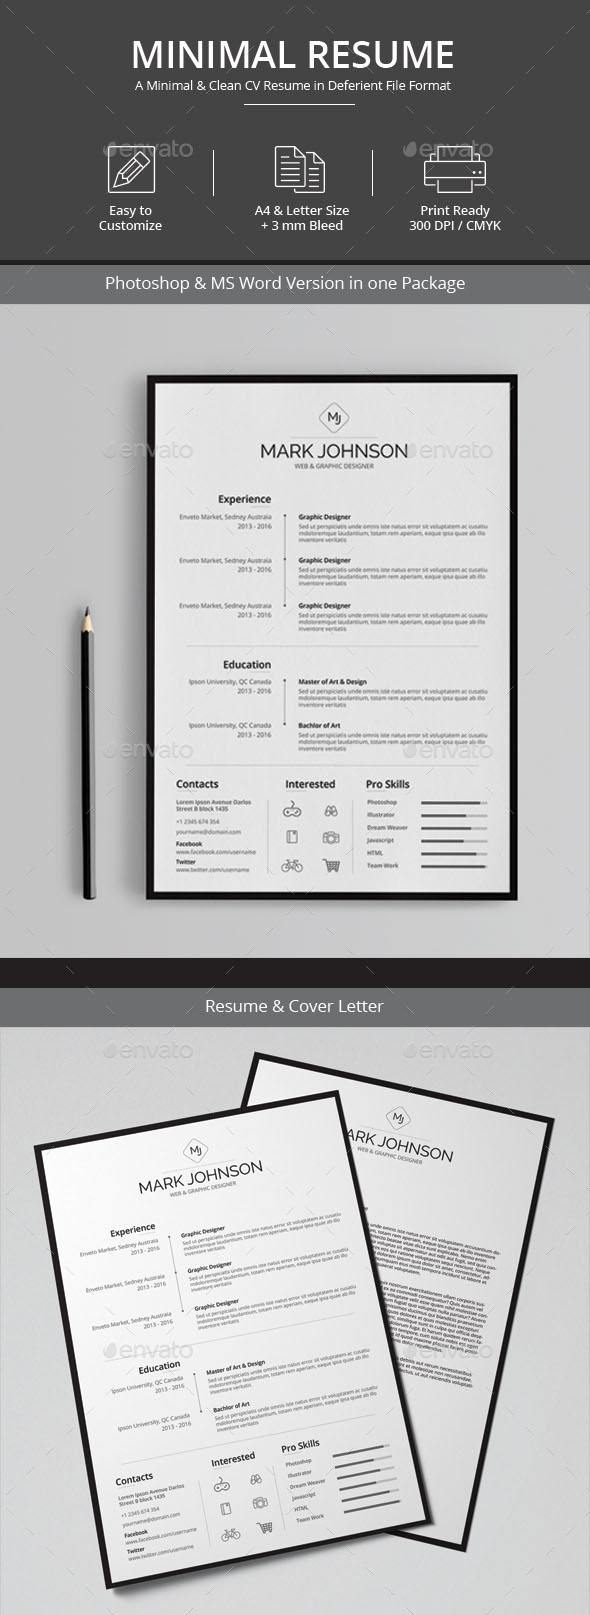 60+ Awesome Resume CV Templates 2018 (Word, Indesign, PSD)